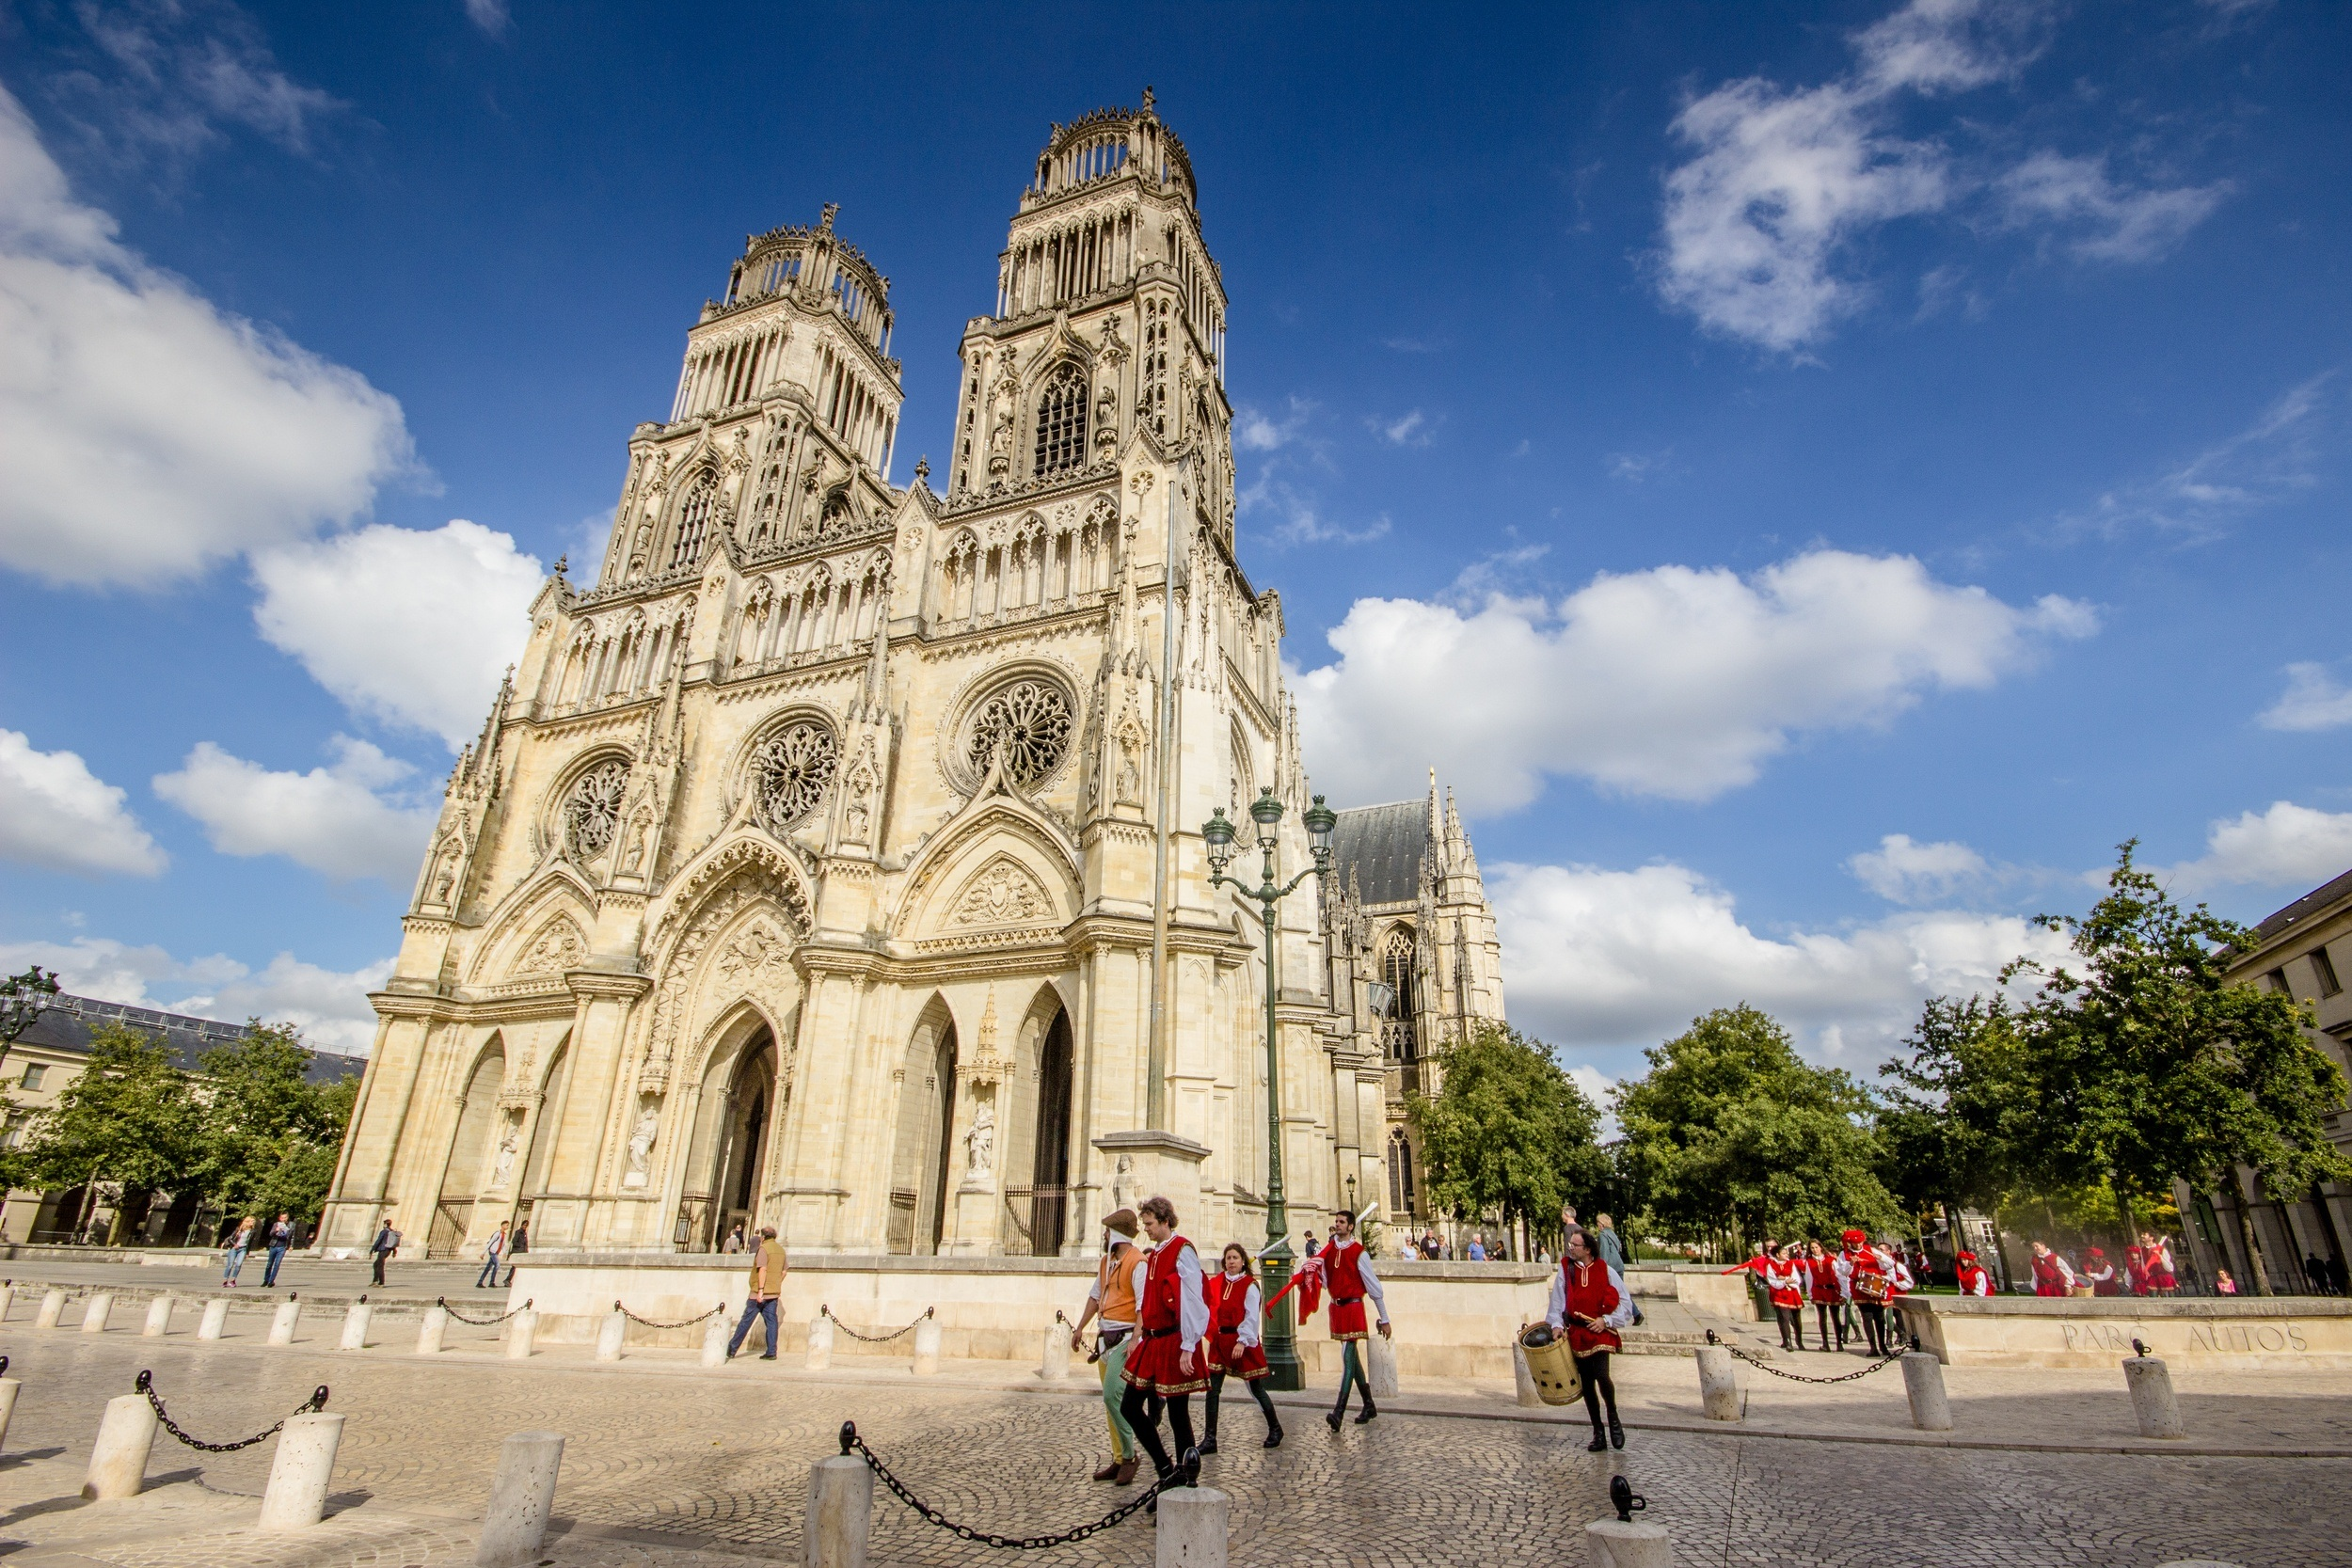 The cathedral in Orleans, France